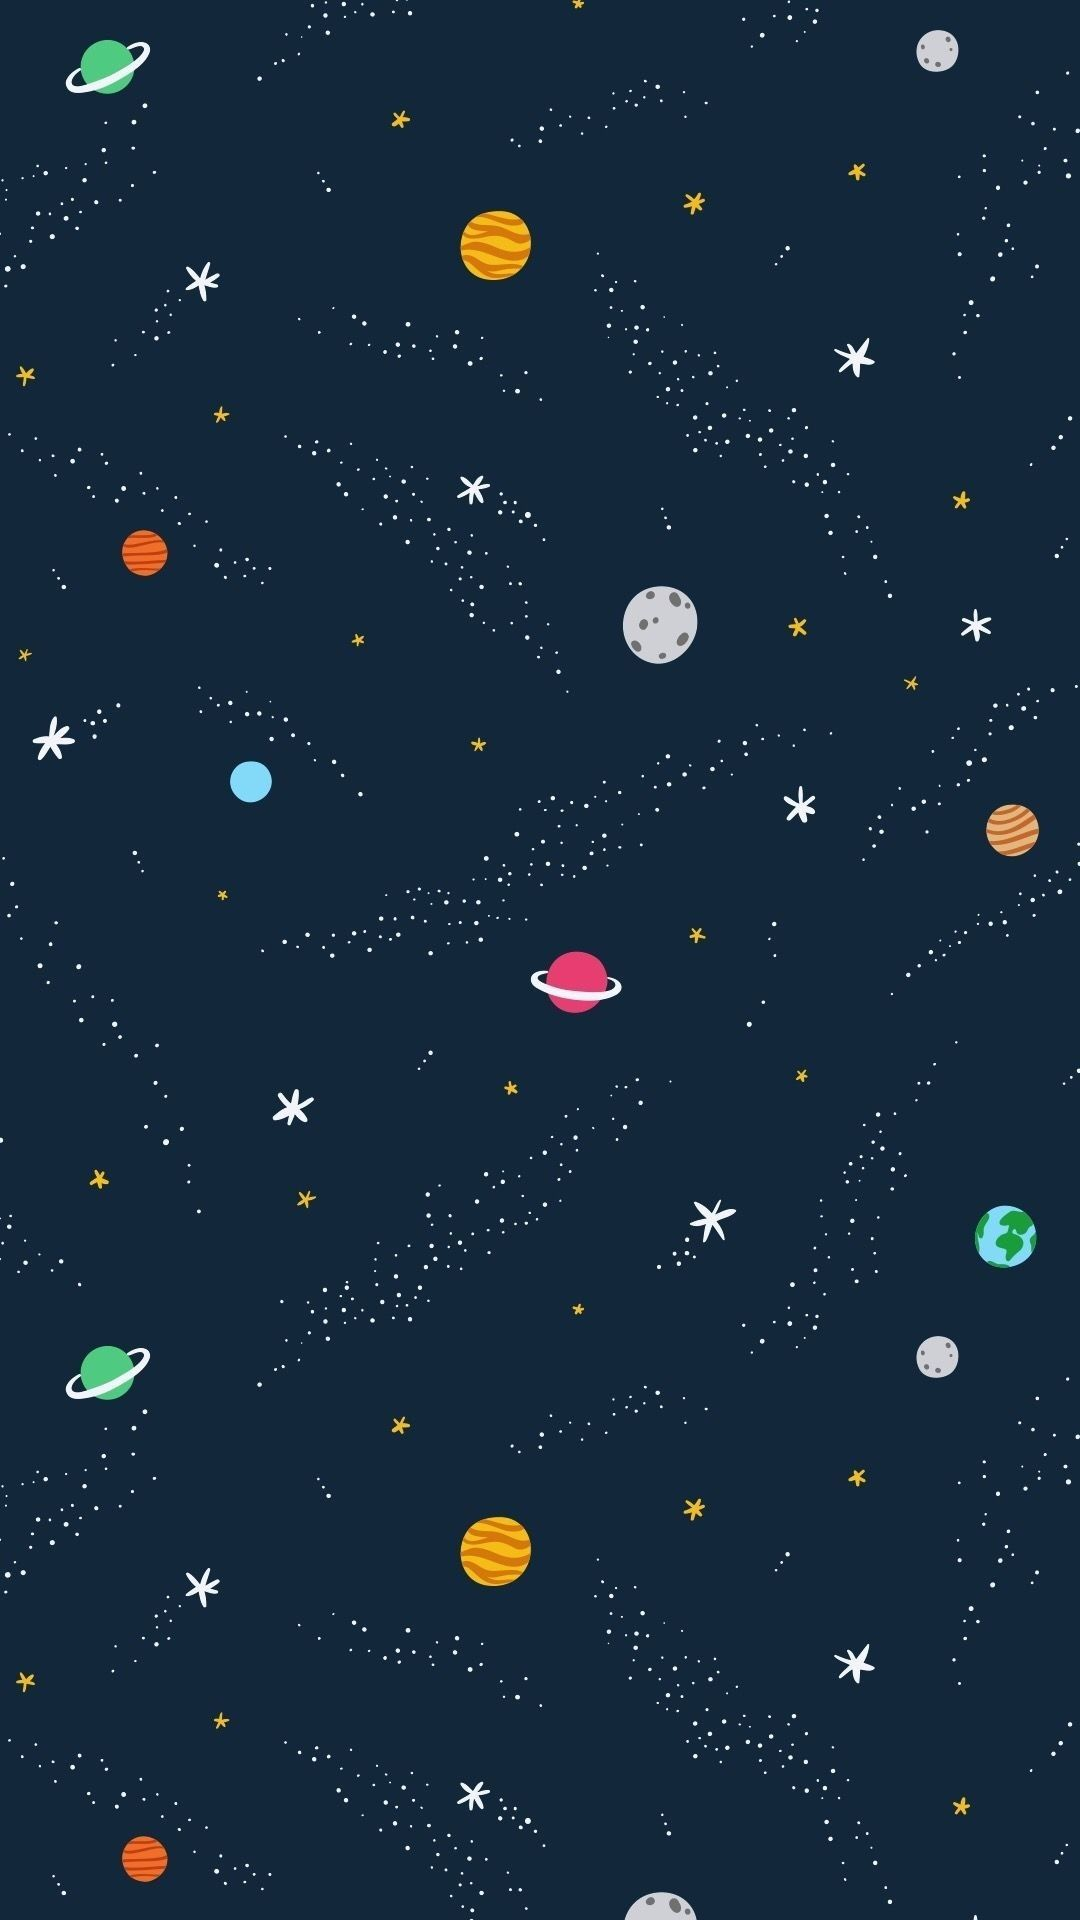 Wallpaper Background Iphone Mobile Space Planets Whatsapp